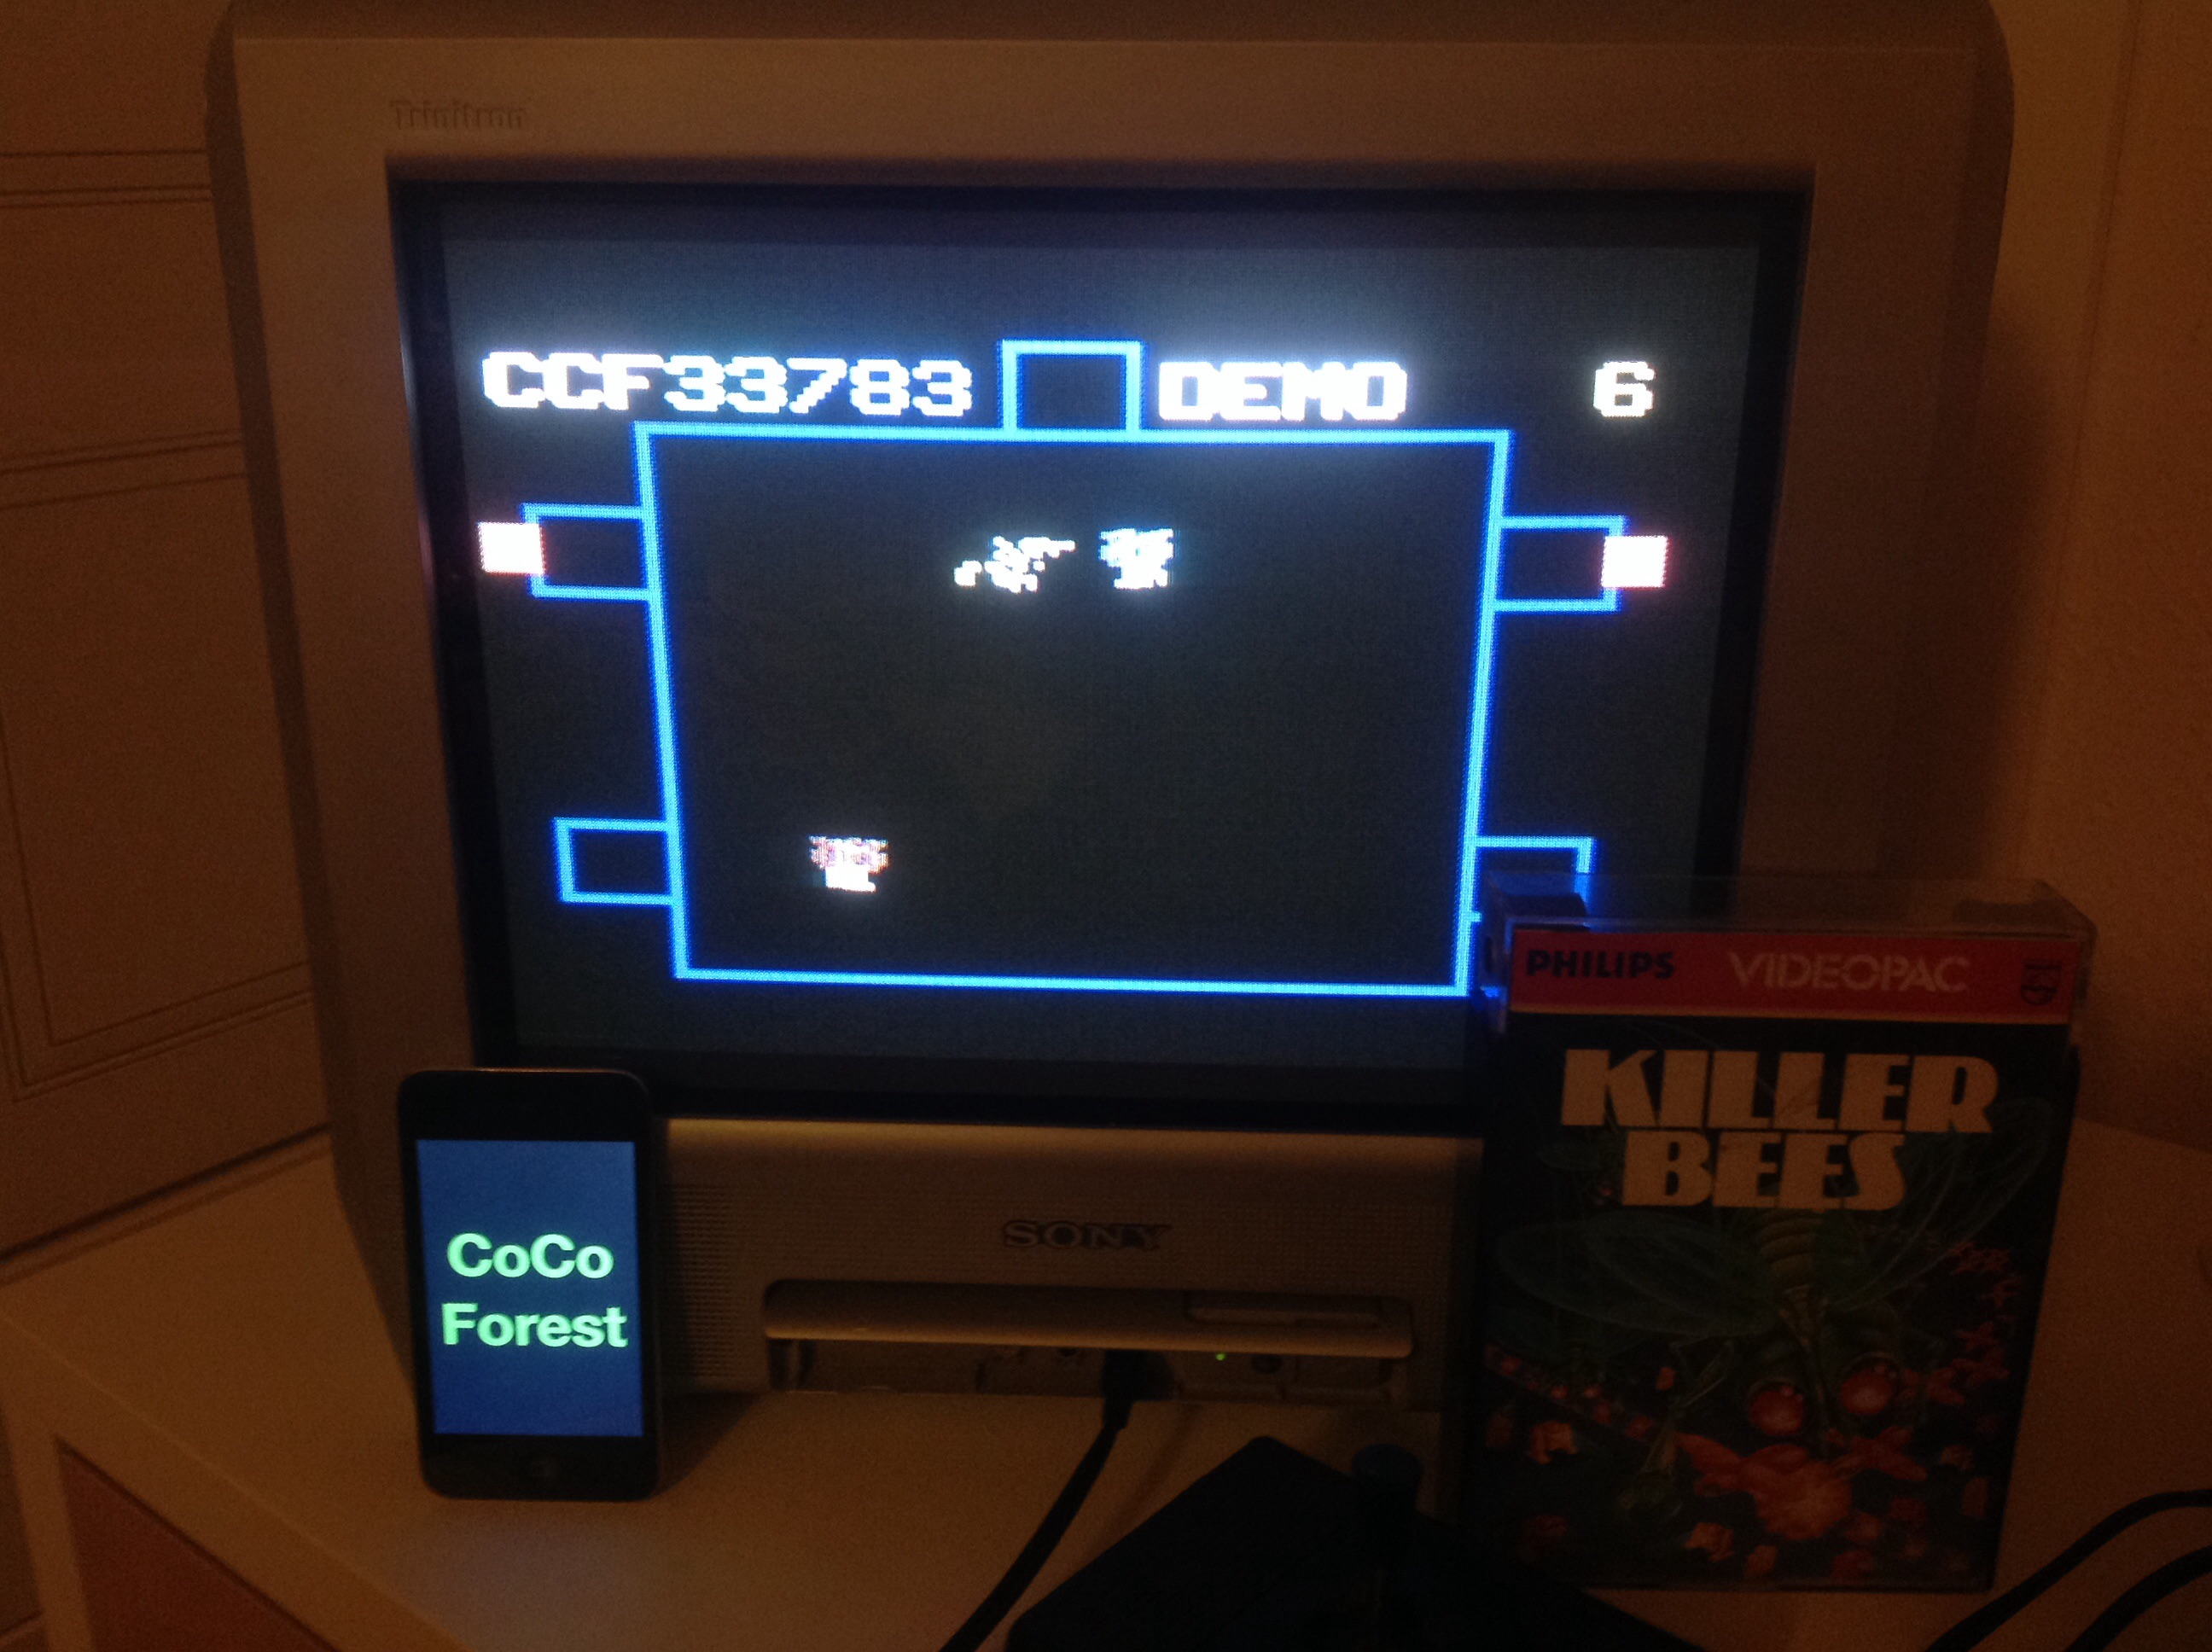 CoCoForest: Killer Bees (Odyssey 2 / Videopac) 33,783 points on 2014-10-29 11:23:44